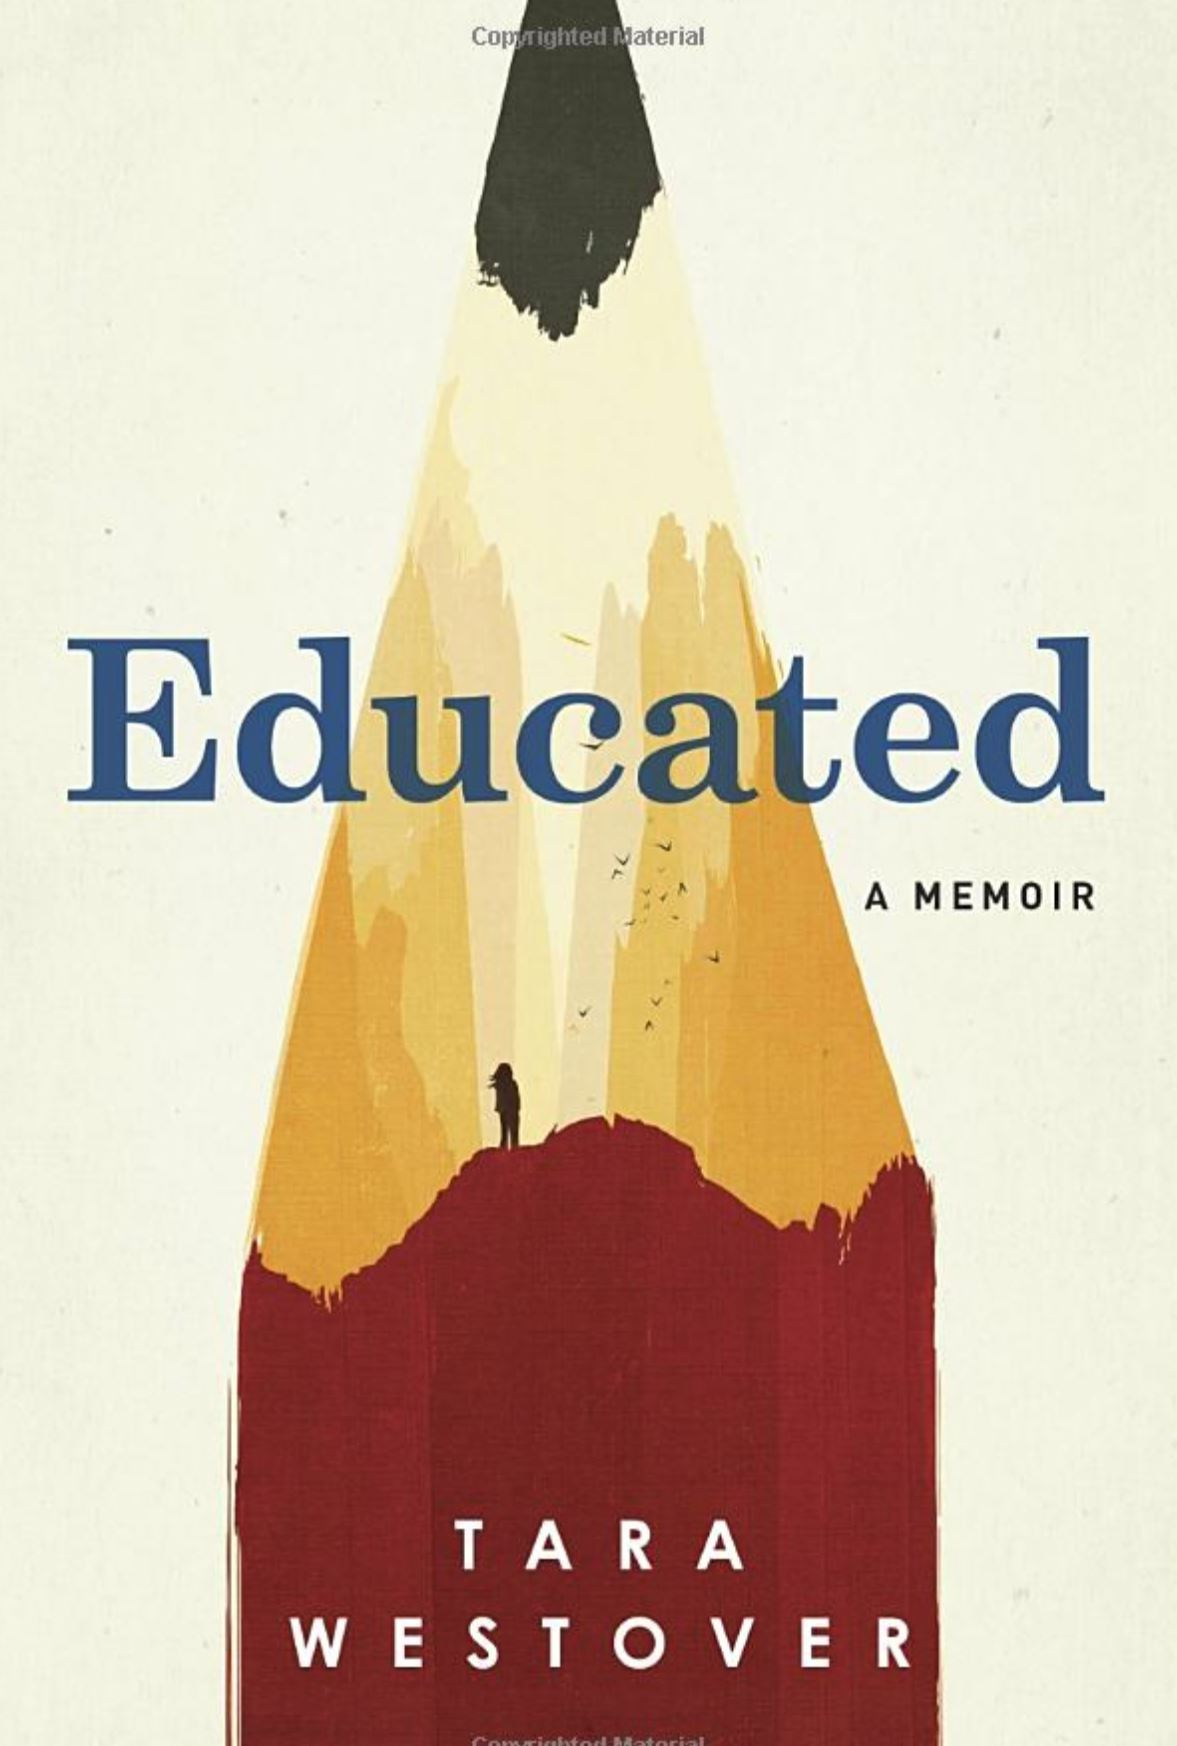 "Educated: A Memoir by Tara Westover - Markus: Wow. I realize that's a cliche way to begin any book review but if there's one that's worthy of it, this is it. Whatever you've heard about this book is true, starting with it being a favorite of Oprah and Barack Obama's and Bill Gate's Winter 2018 Books List not to mention that it's spent months on the New York Times Bestseller list and has 4.5 stars on Amazon based on over 8,000 reviews. Without going into spoilers, the basic story is that Tara is raised in a reclusive and isolated fundamentalist family in rural Idaho without getting any formal schooling at any point. The story begins with her parents' paranoia about The Federal government and Illuminati - because of which she doesn't have a birth certificate until age 9 when she finally gets a ""delayed"" birth certificate (and to date, she still doesn't know what date her actual birthday is). If you think that premise doesn't lend itself to keeping you on the edge of your seat, you'd be wrong. We only took breaks on this audiobook when we absolutely had to - it pulled us in and gripped us that hard from start to end.It's an insane ride through interwoven topics like family dynamics, personal identity, generational trauma and abuse, mental health, education (obviously) and learning to ask for help. There are plenty of excruciating moments that were almost impossible to listen to and in the end made me so much more grateful for all the opportunity and privilege I've enjoyed in my own life. In the end, all that each of us knows is what we've been told by our parents and teachers until we explore the world for ourselves. We do this by becoming educated in one way or another - and that's when we can break free from what hasn't been working for prior generations and leave our own mark of love and beauty on the world through our own life and decisions. Get ready and hang on tight."